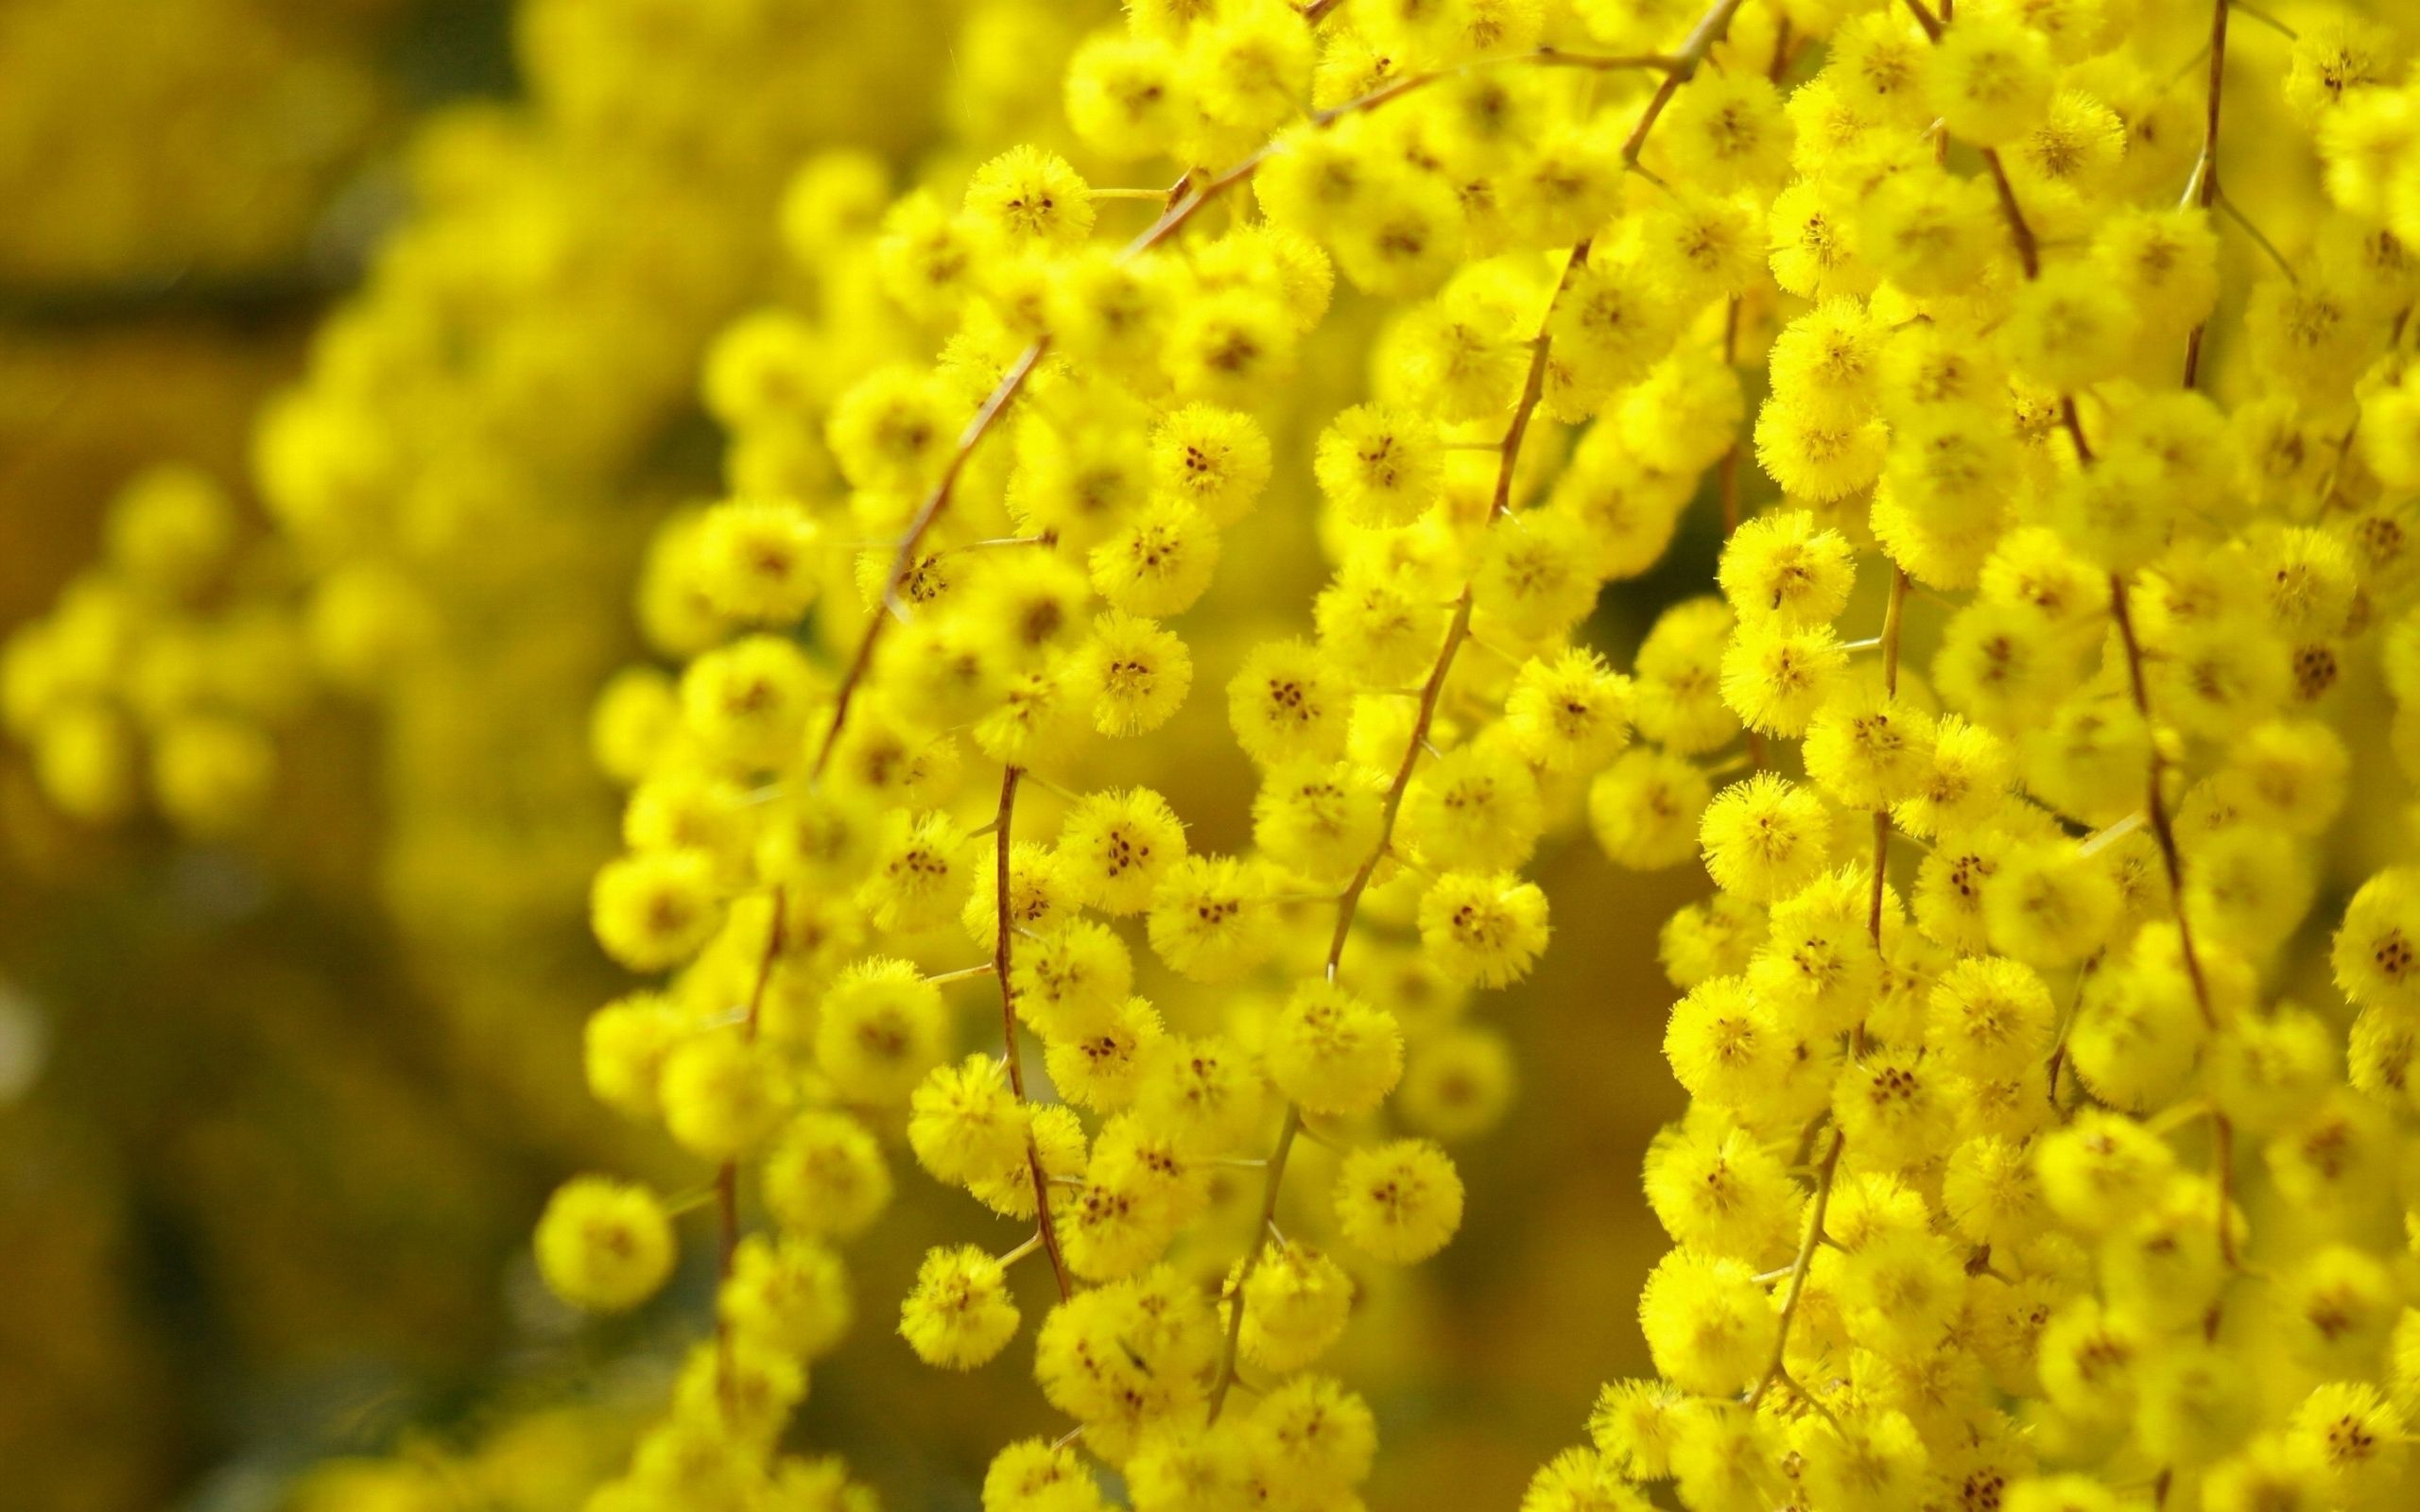 Acacia Flower Yellow Blossom Yellow Flower Wallpaper Blossom